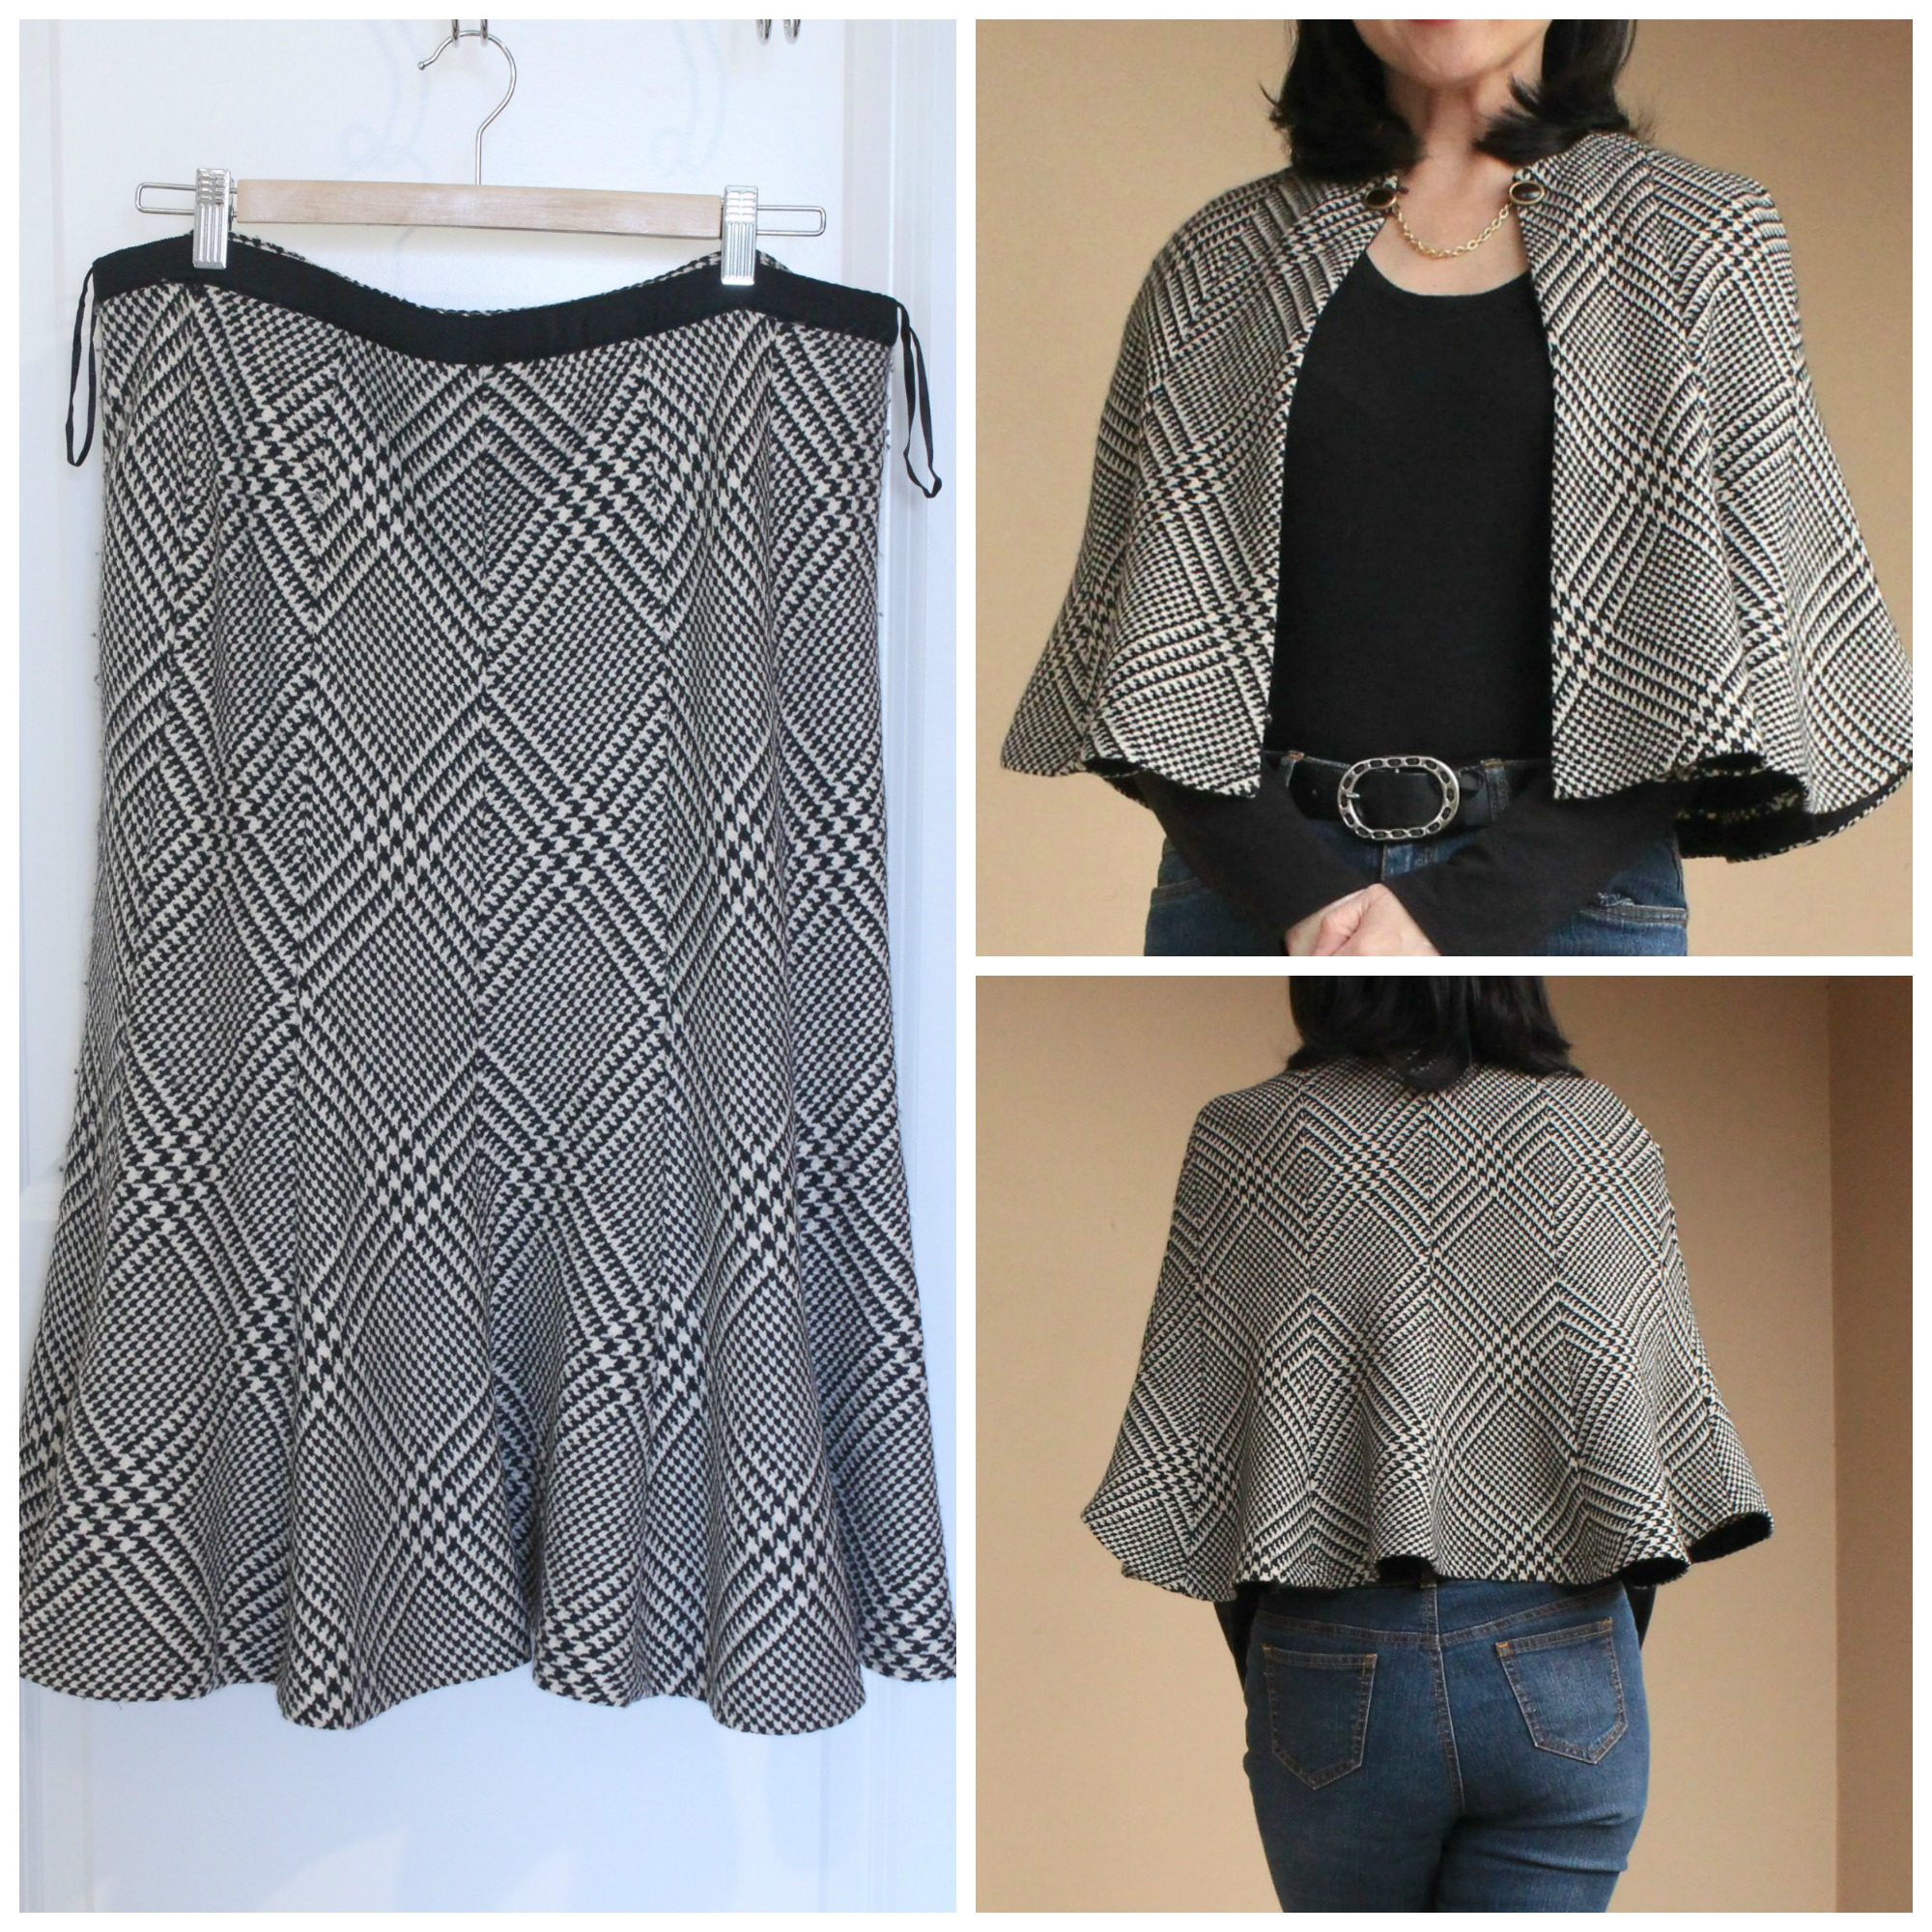 Step by step tutorial on how to refashion a plaid skirt into a cute capelet.